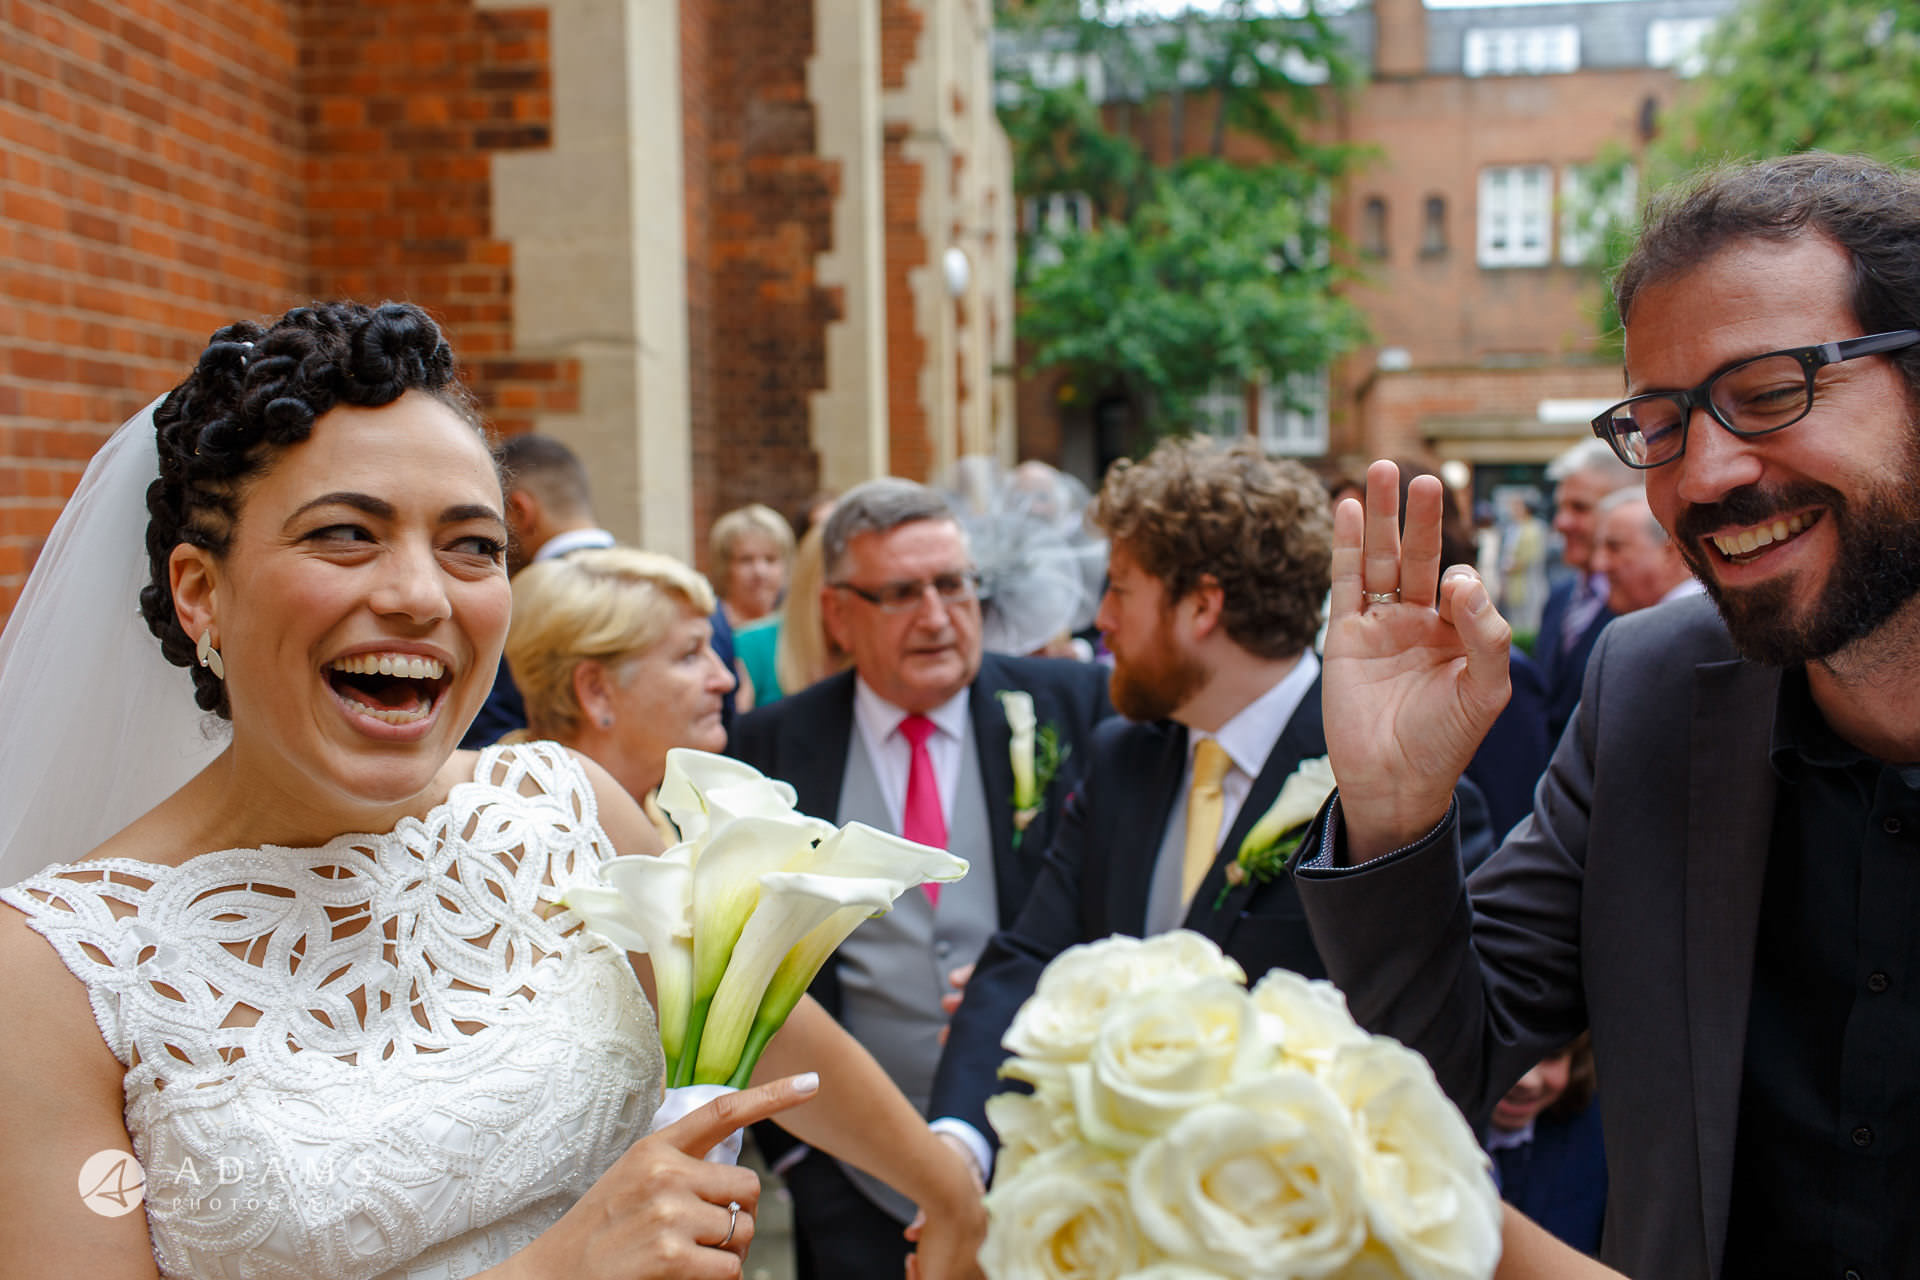 bride is being greeted by a guest after their wedding ceremony at st Mary of Eton church in hackney wick